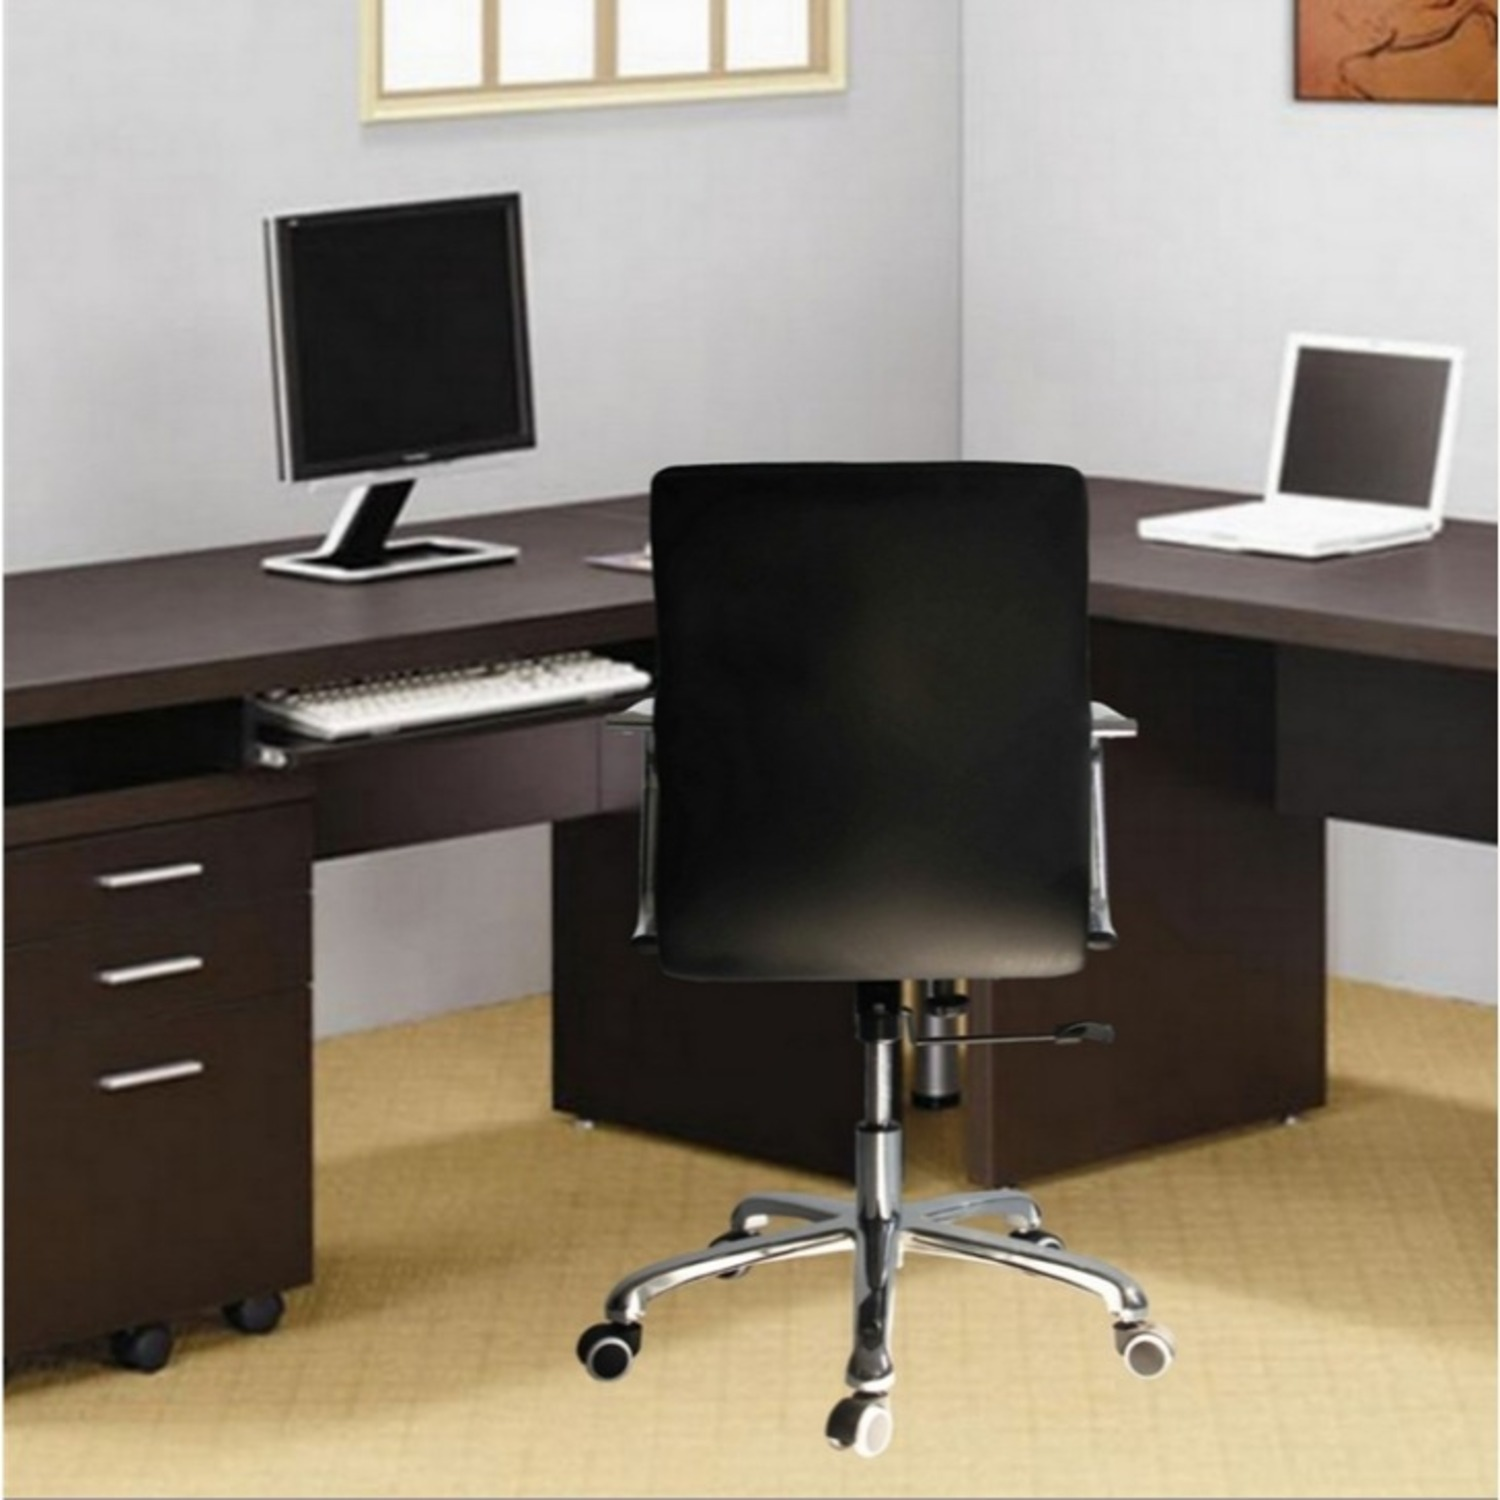 Office Chair In Mid-Back Black Leatherette Finish - image-5